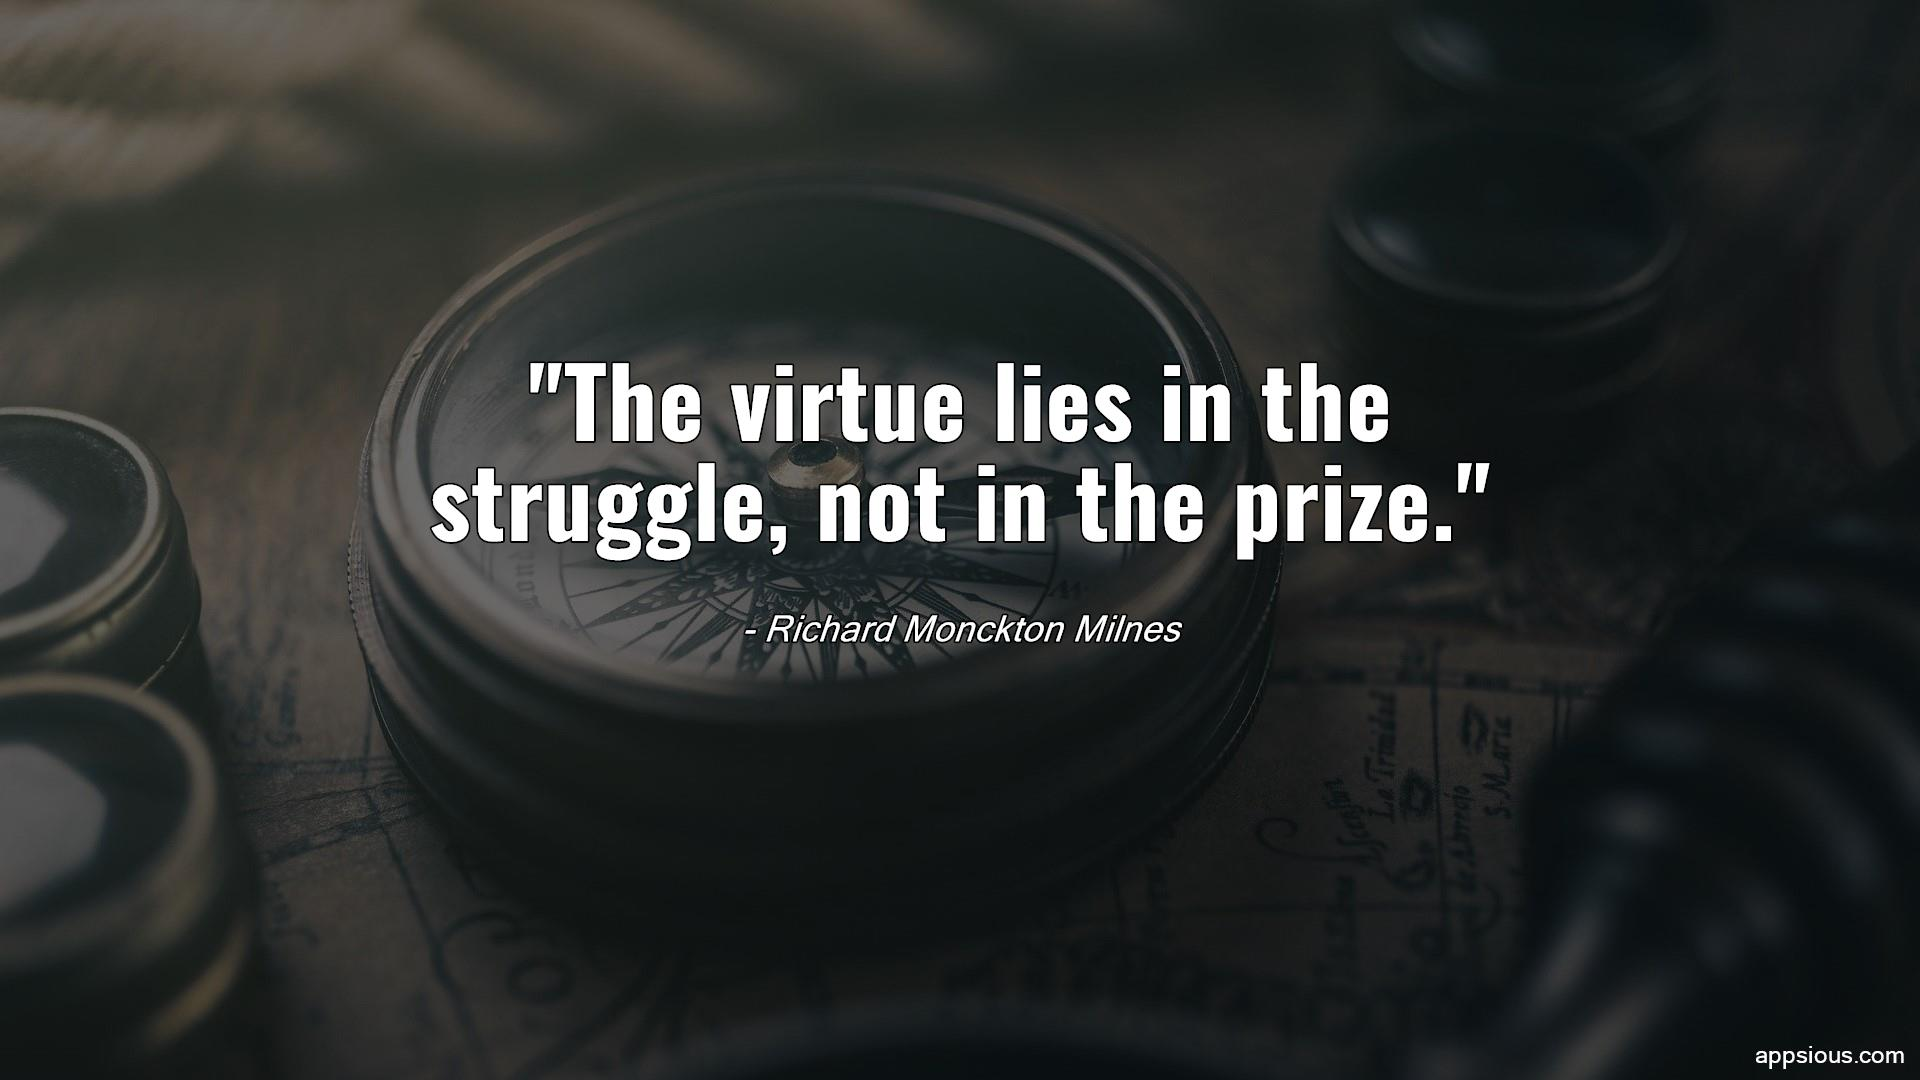 The virtue lies in the struggle, not in the prize.